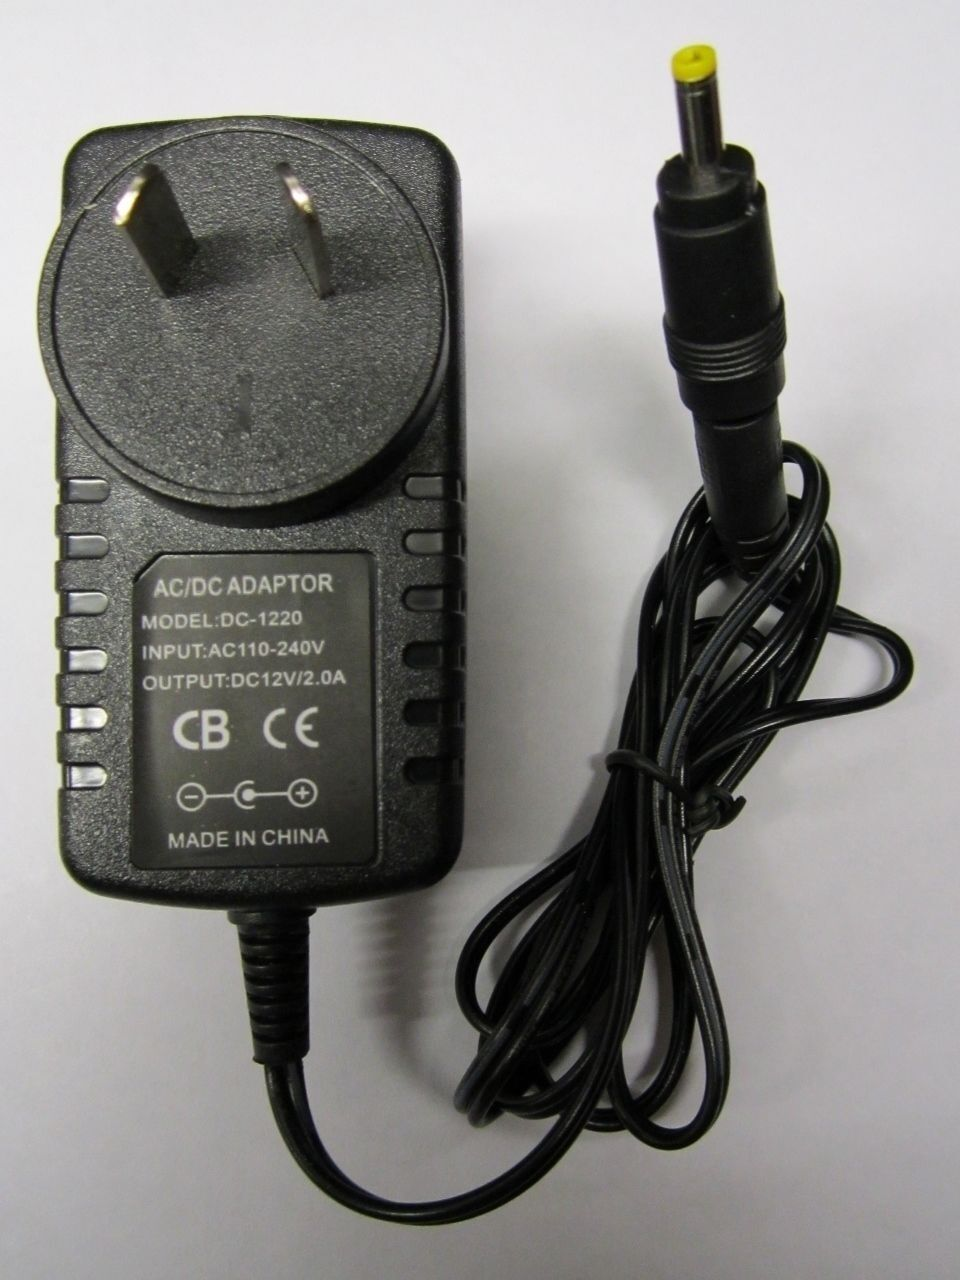 AUS 12V 1.5A AC-DC Adaptor Charger Power Supply for Acer Iconia Tab A500 Tablet